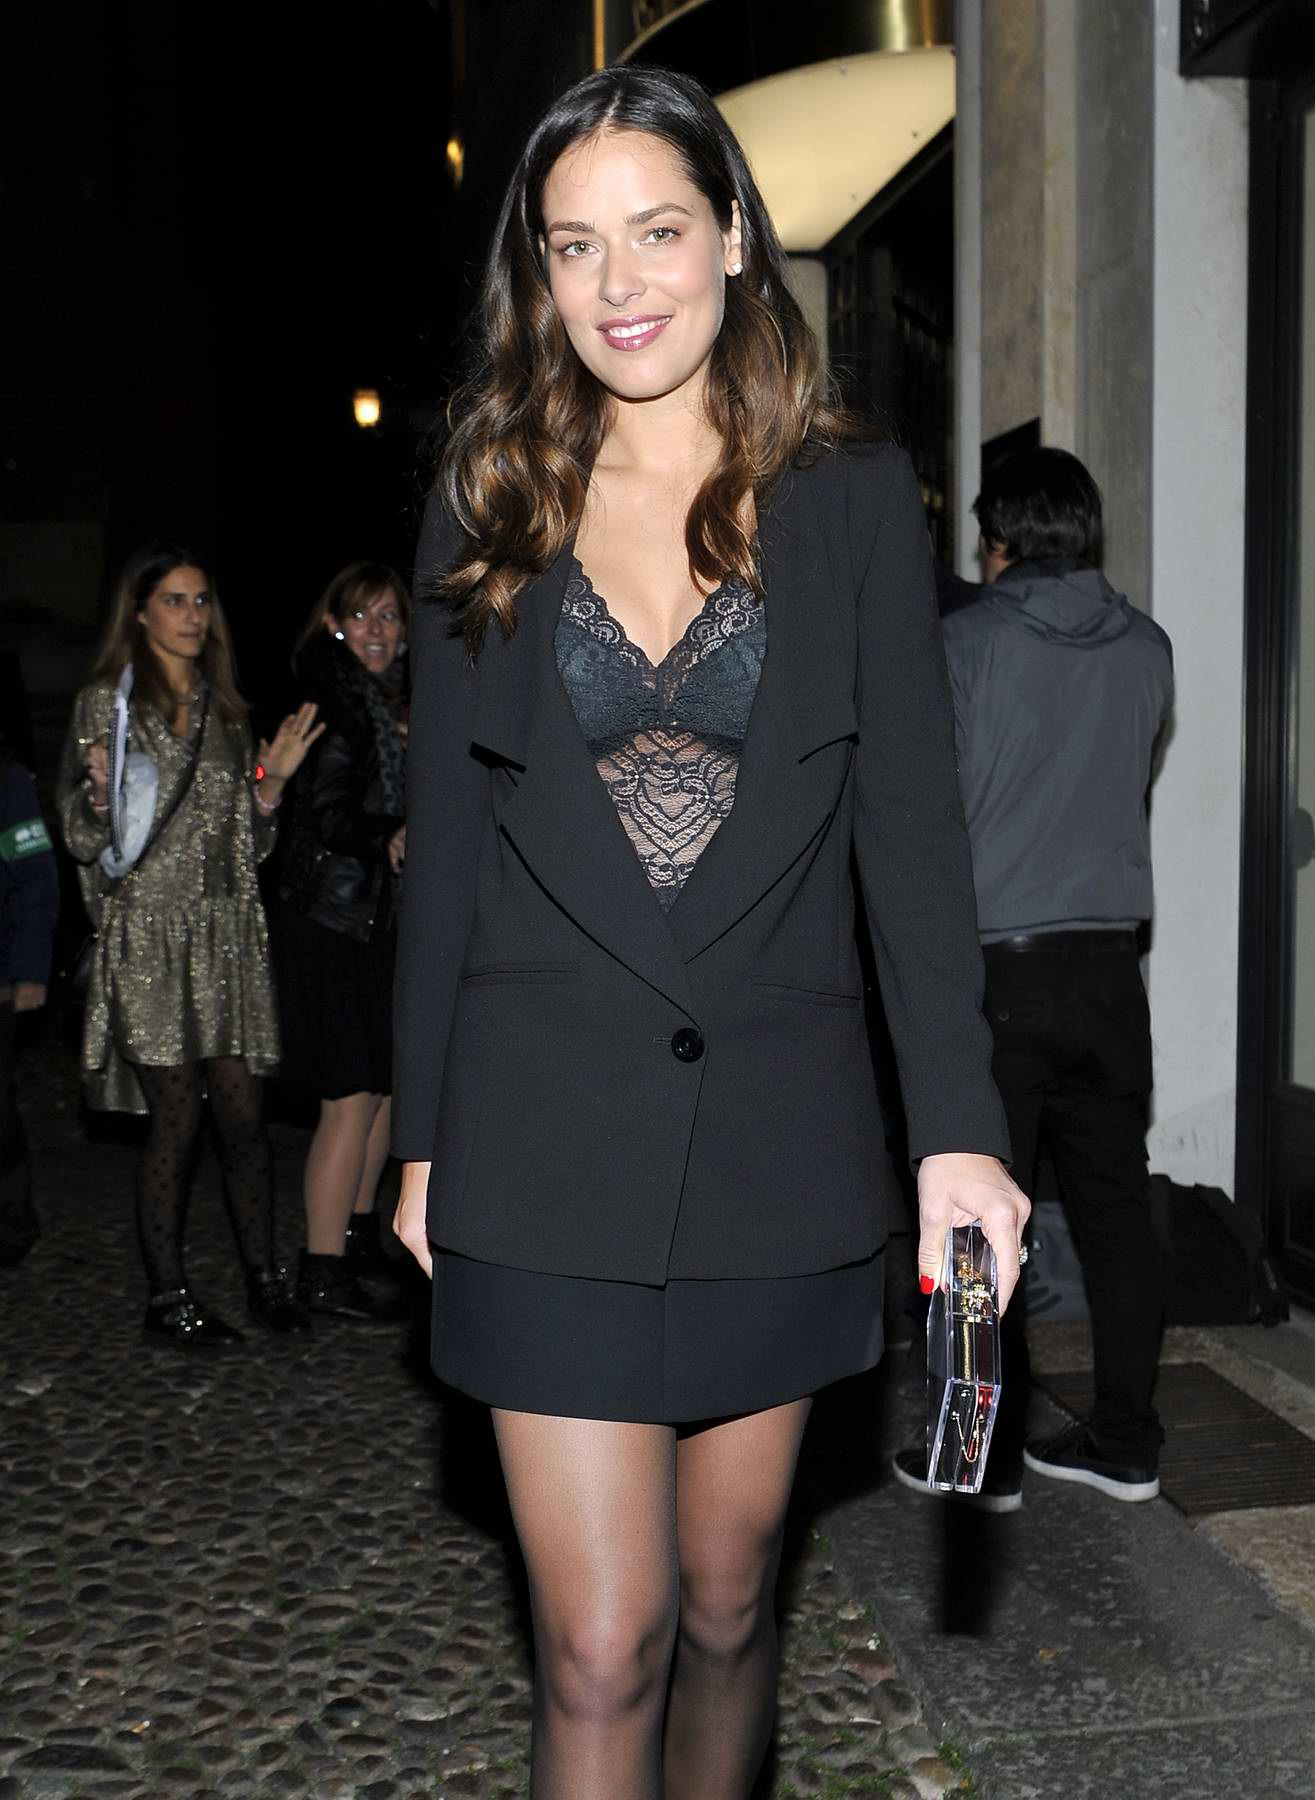 Ana Ivanovic attends the Intimissimi on Ice event in Verona, Italy